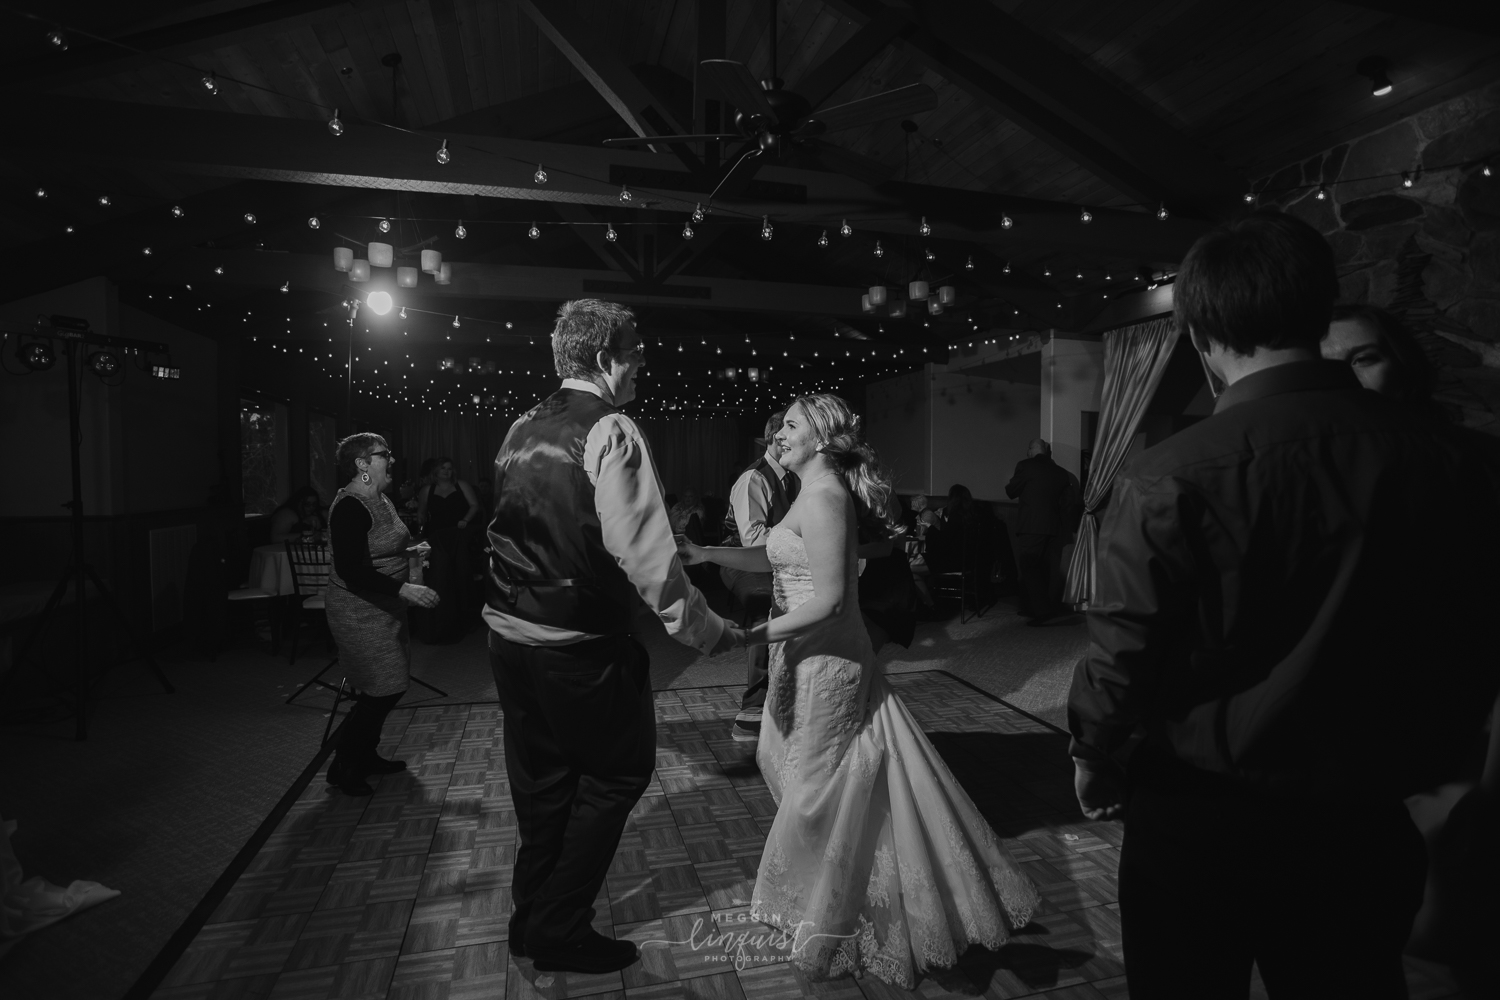 music-themed-winter-wedding-tannenbaum-event-center-reno-lake-tahoe-wedding-photographer-80.jpg